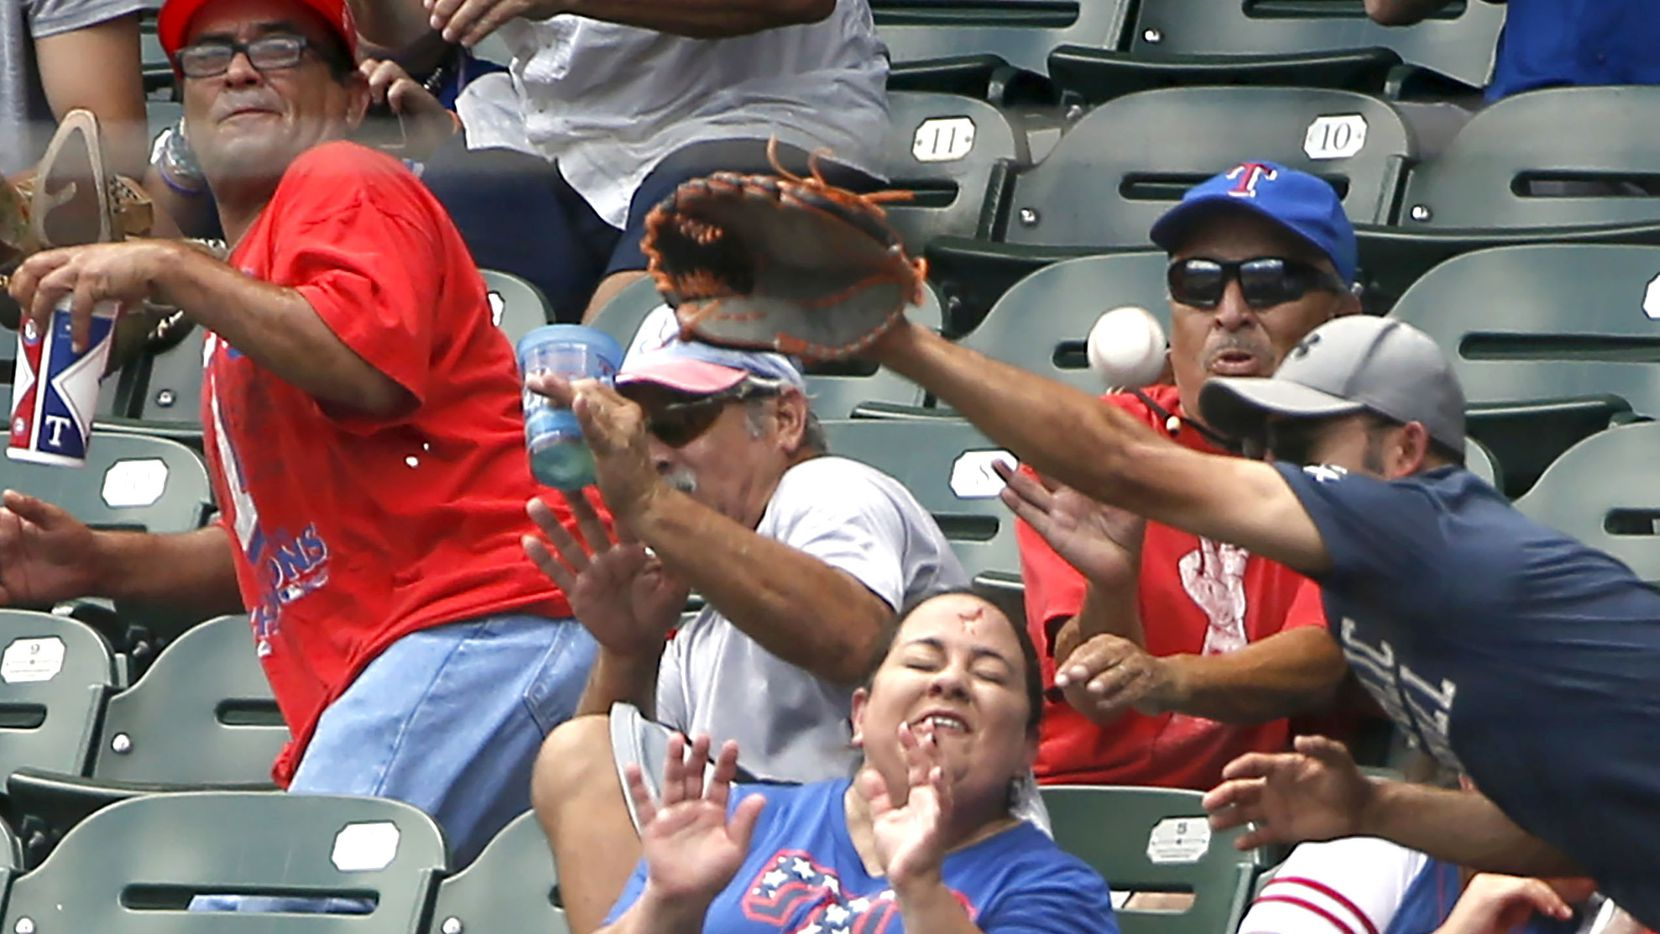 ARLINGTON, TX - AUGUST 4: A fan reacts after being stuck in the forehead by a foul ball off the bat of Willie Calhoun #5 of the Texas Rangers as the Rangers play the Detroit Tigers during the first inning at Globe Life Park in Arlington on August 4, 2019 in Arlington, Texas. (Photo by Ron Jenkins/Getty Images)